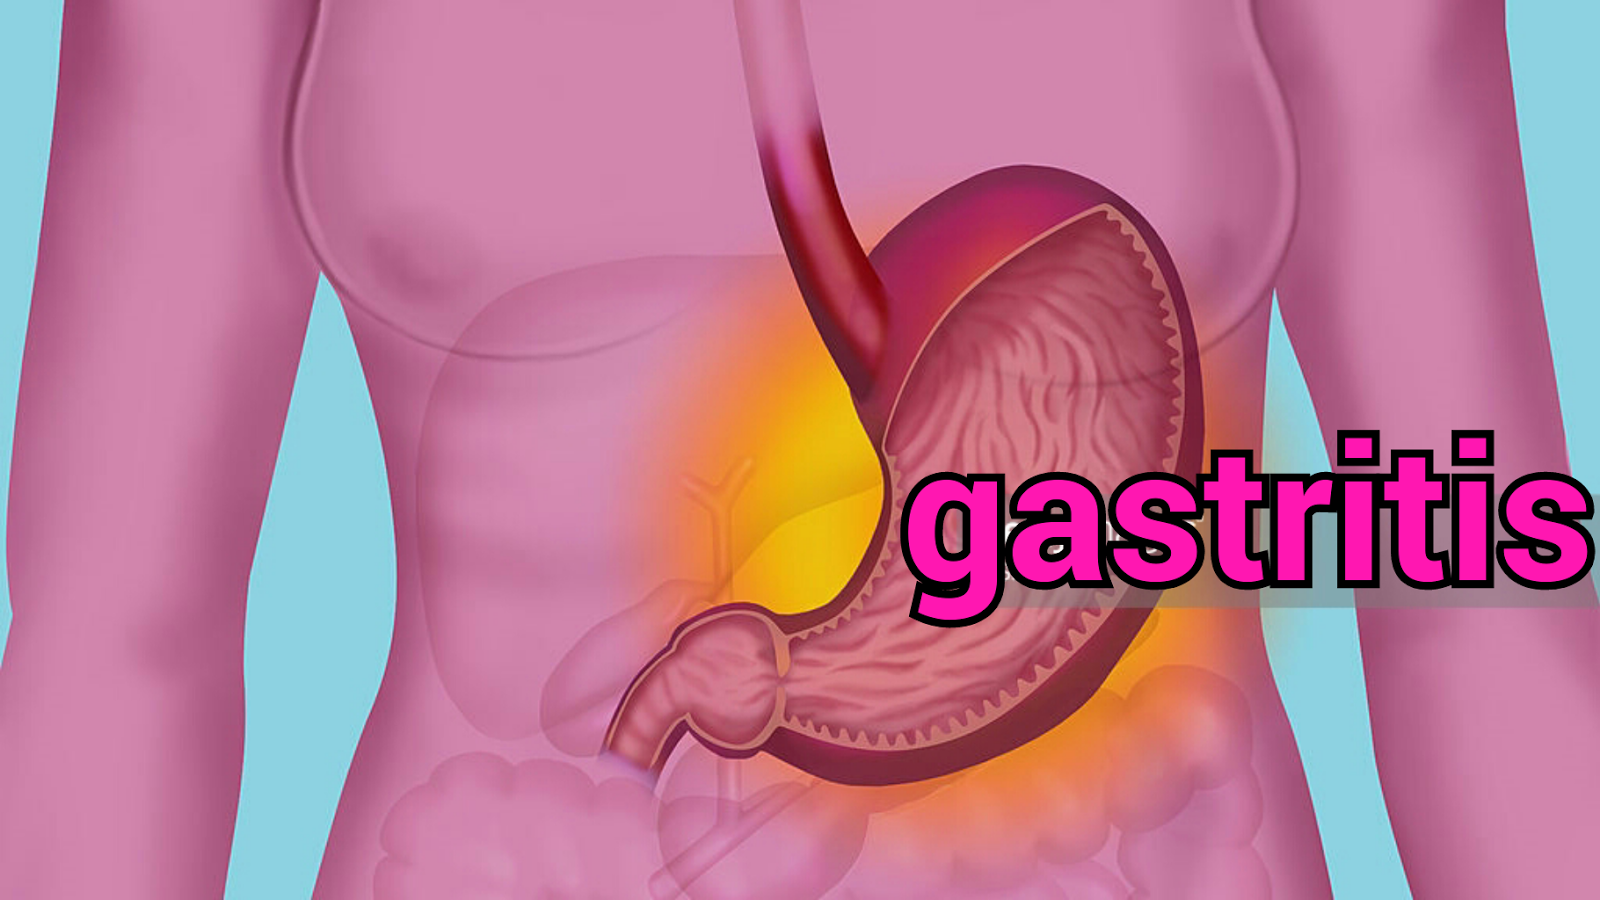 Symptoms of chronic gastritis. Disease treatment and prevention